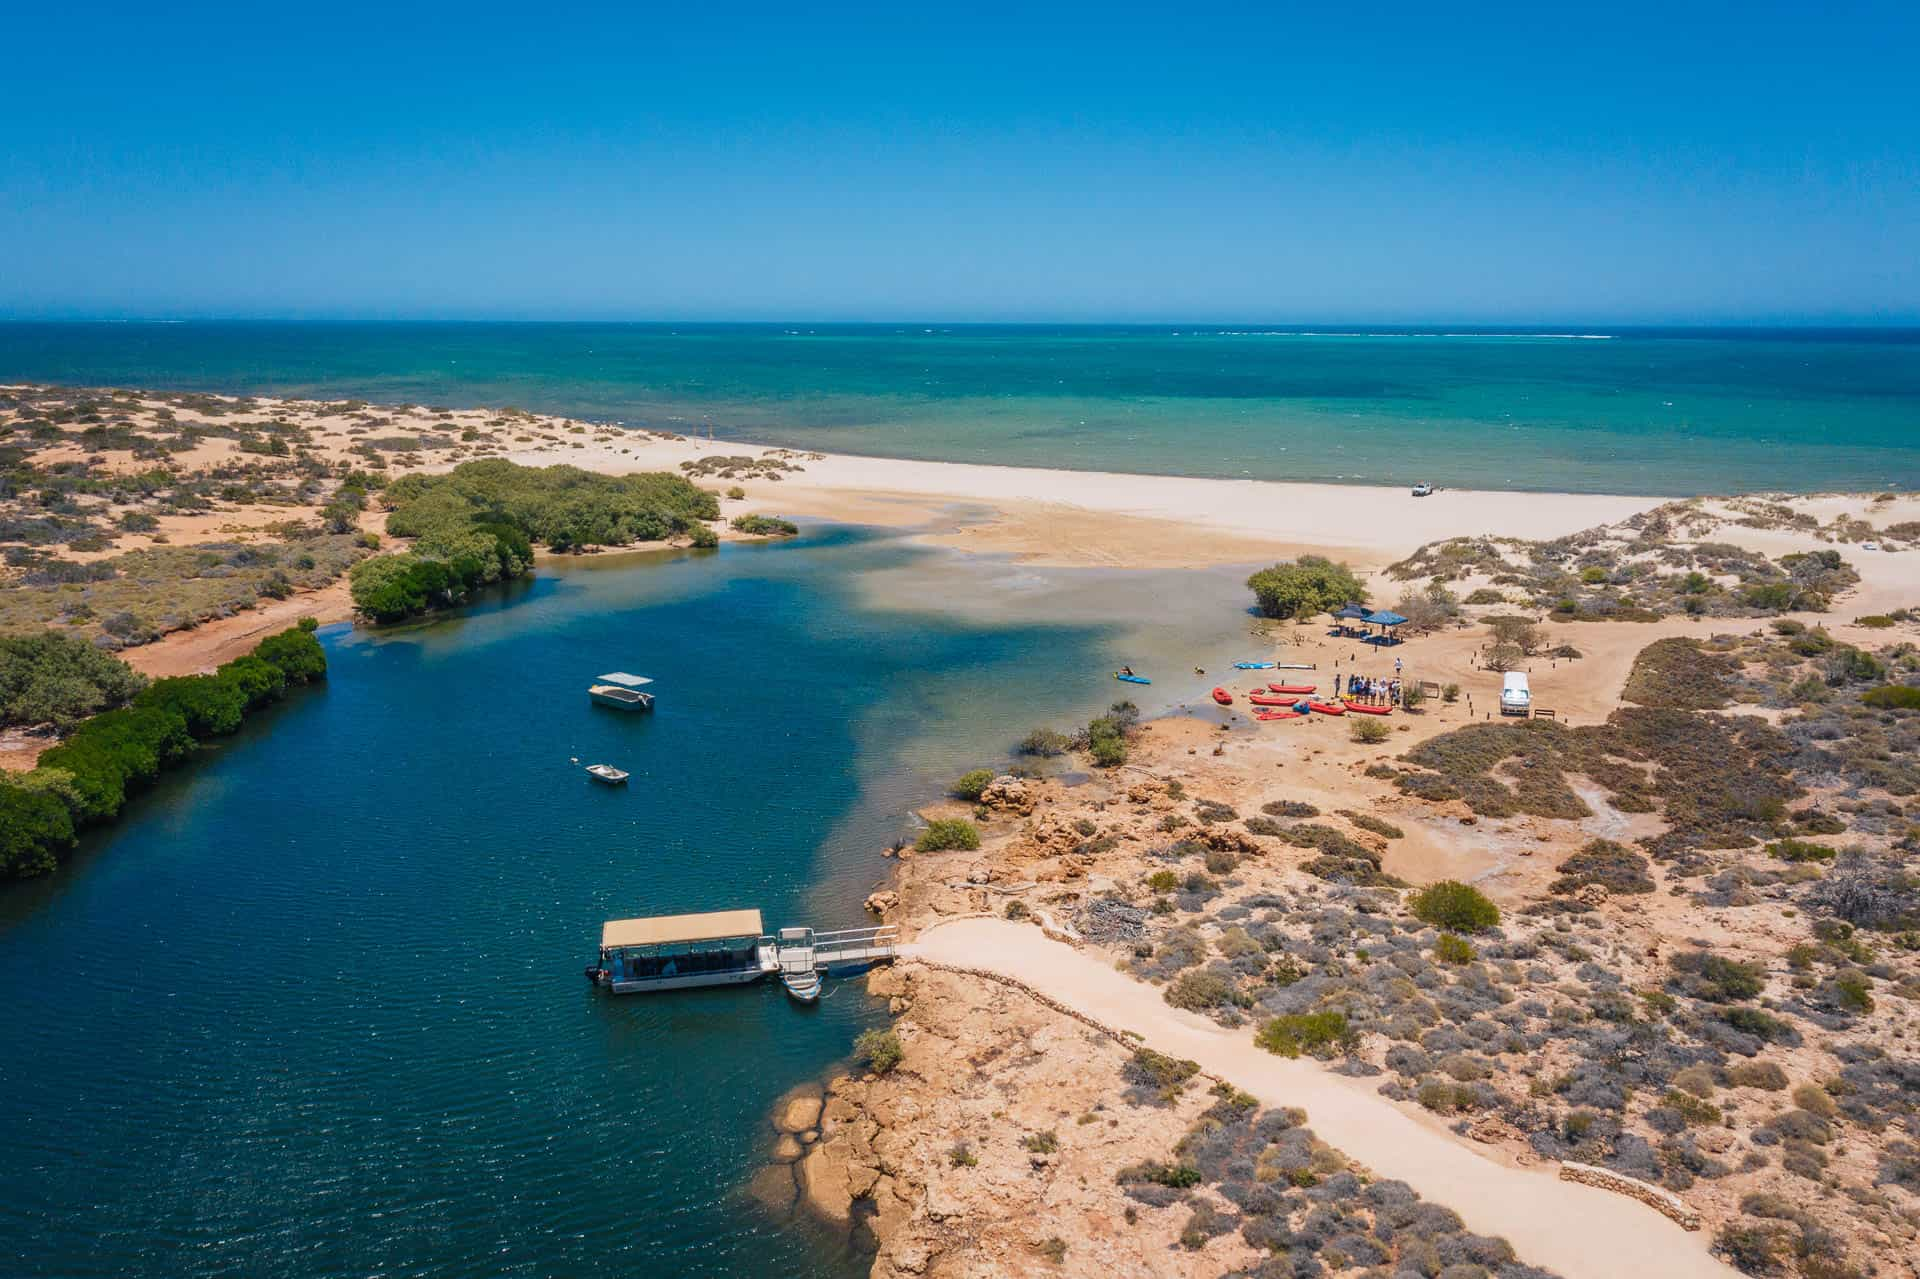 yardie creek, yardie creek boat tour, things to do in exmouth, exmouth western australia, what to do in exmouth, exmouth things to do